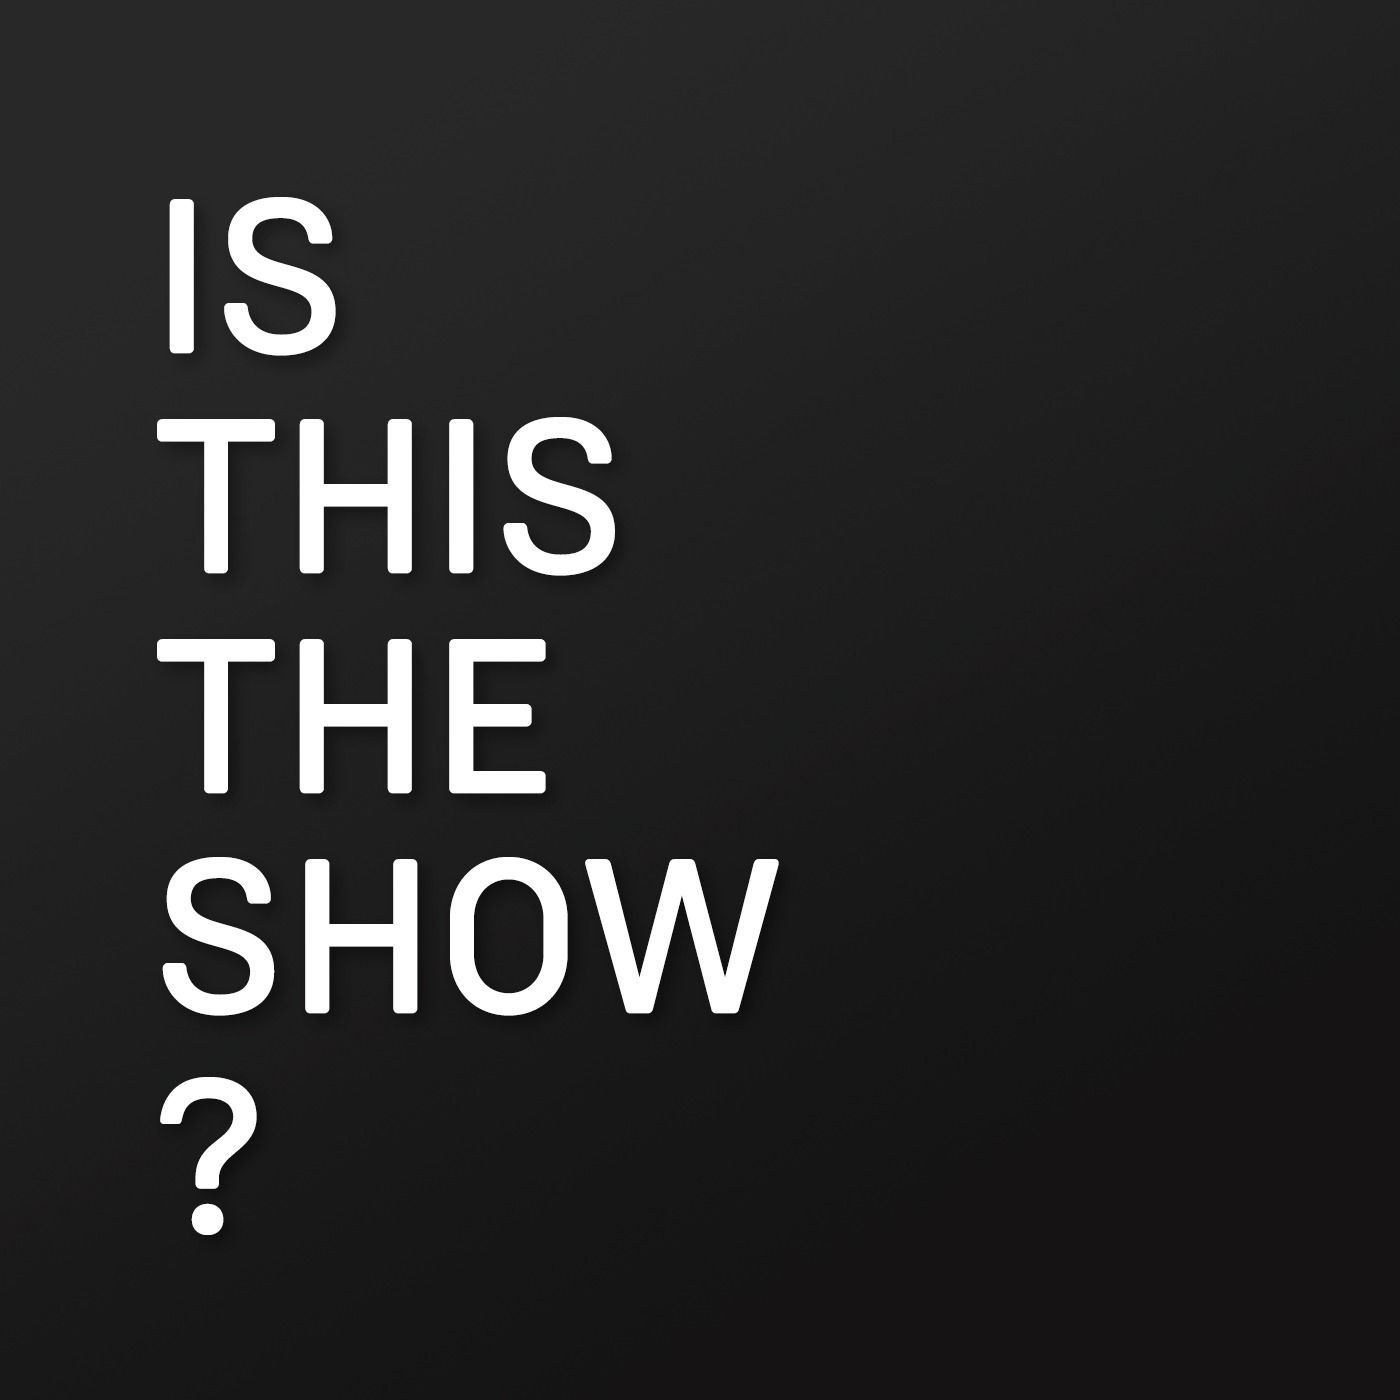 Is This The Show?